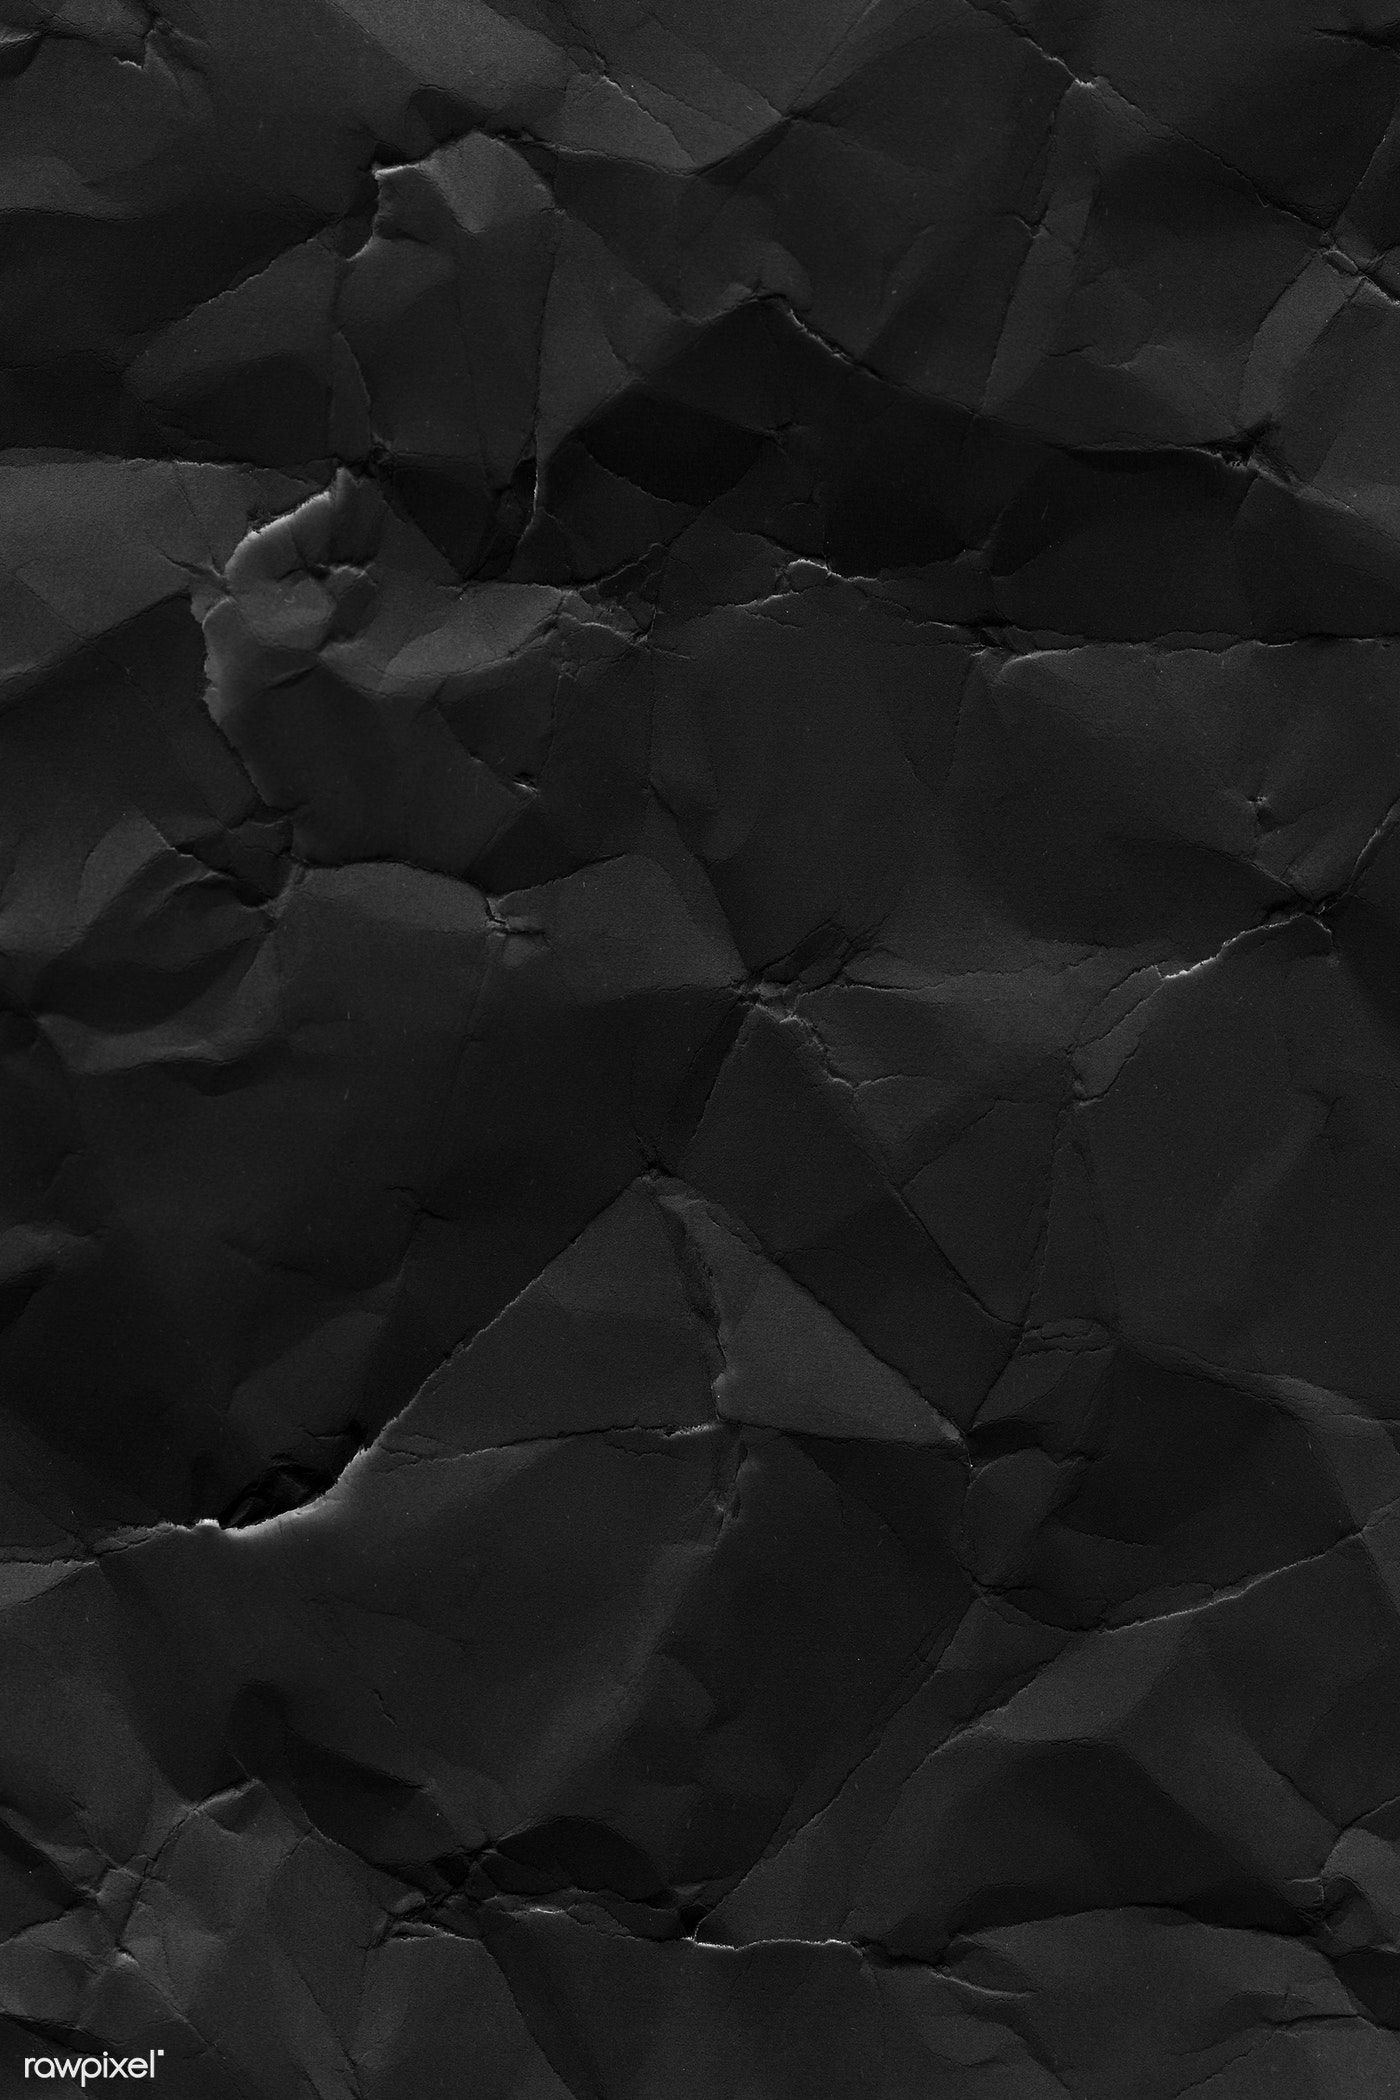 Crumpled Black Paper Textured Background Free Image By Rawpixel Com Marinemynt Black Paper Texture Texture Graphic Design Photo Texture